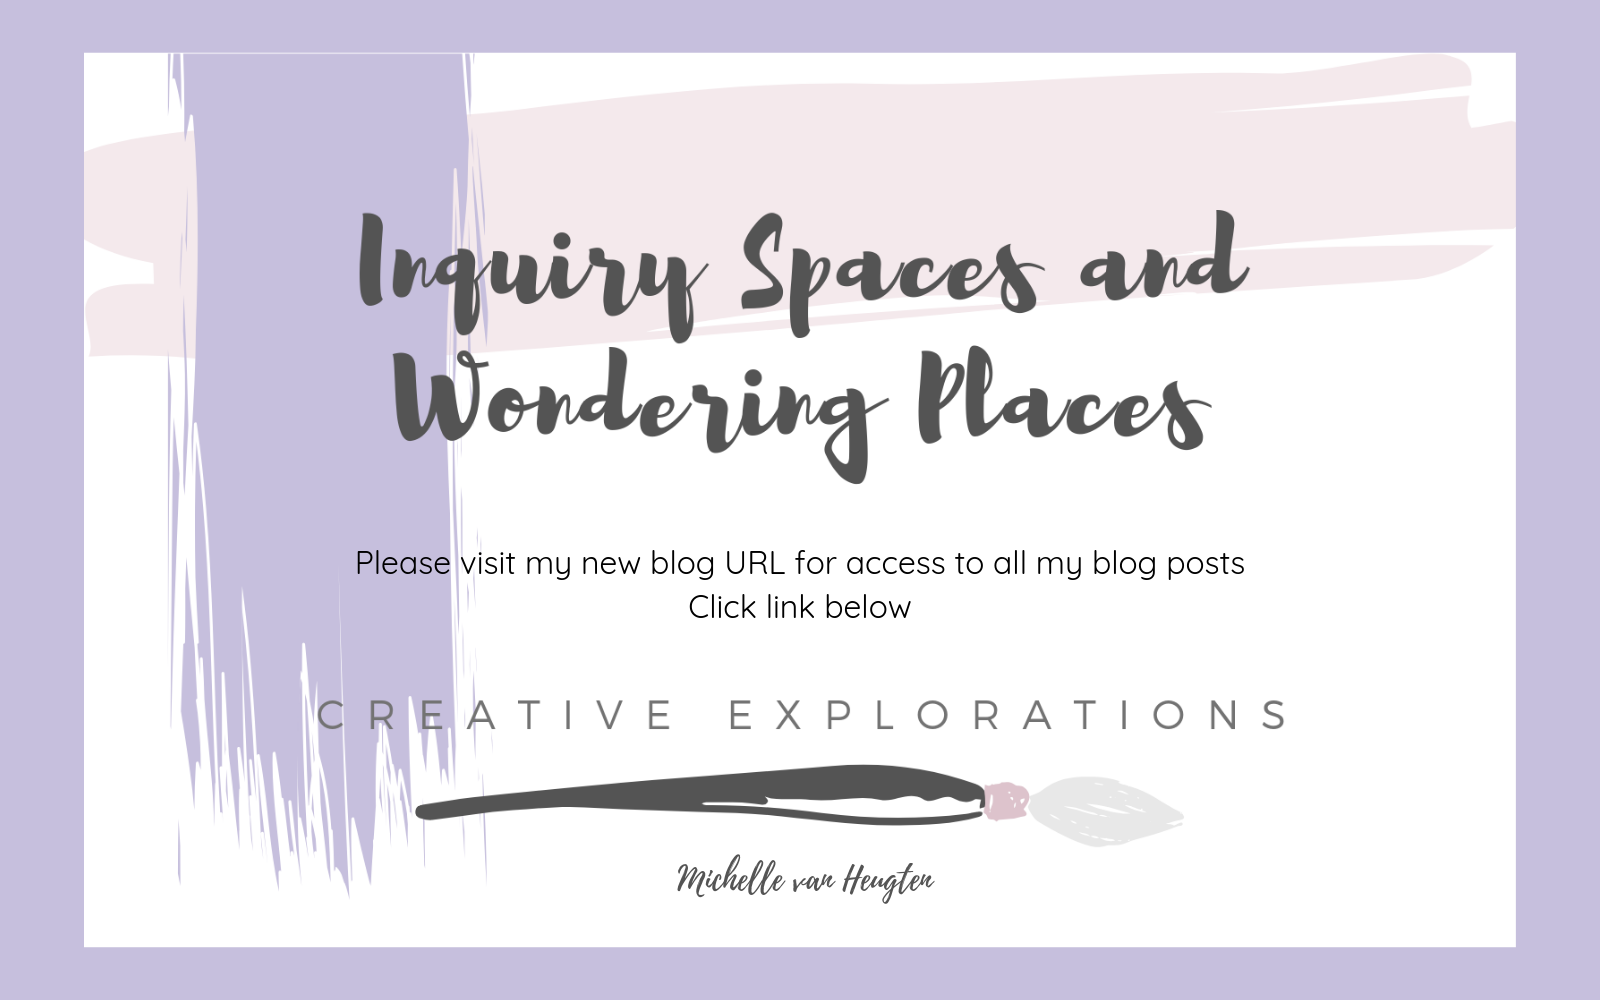 Inquiry Spaces and Wondering Places